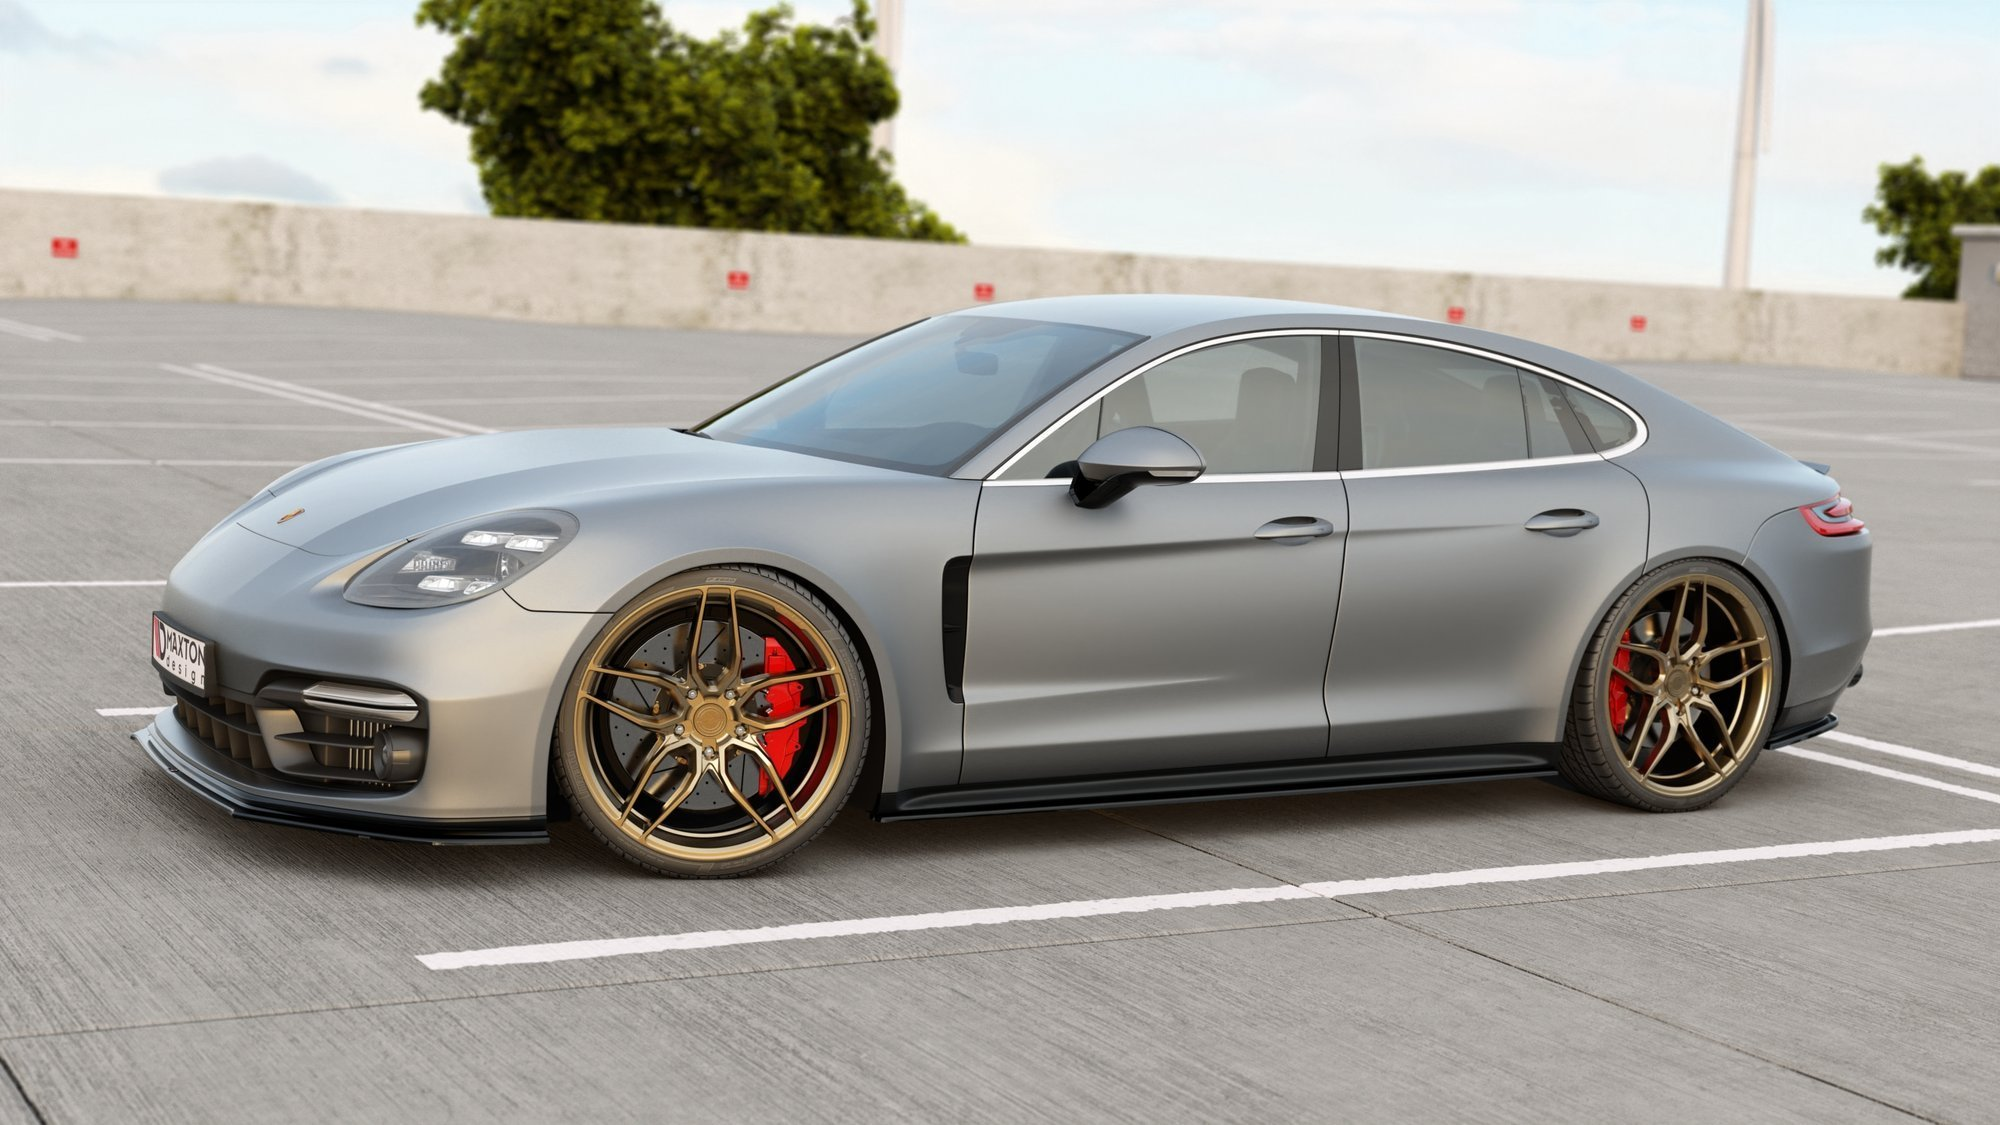 Side Skirts Diffusers Porsche Panamera Turbo Gts 971 Our Offer Porsche Panamera 971 Maxton Design Porsche offers the 2021 panamera in such a wide range of models and prices, your budget and needs should dictate which is best for you. side skirts diffusers porsche panamera turbo gts 971